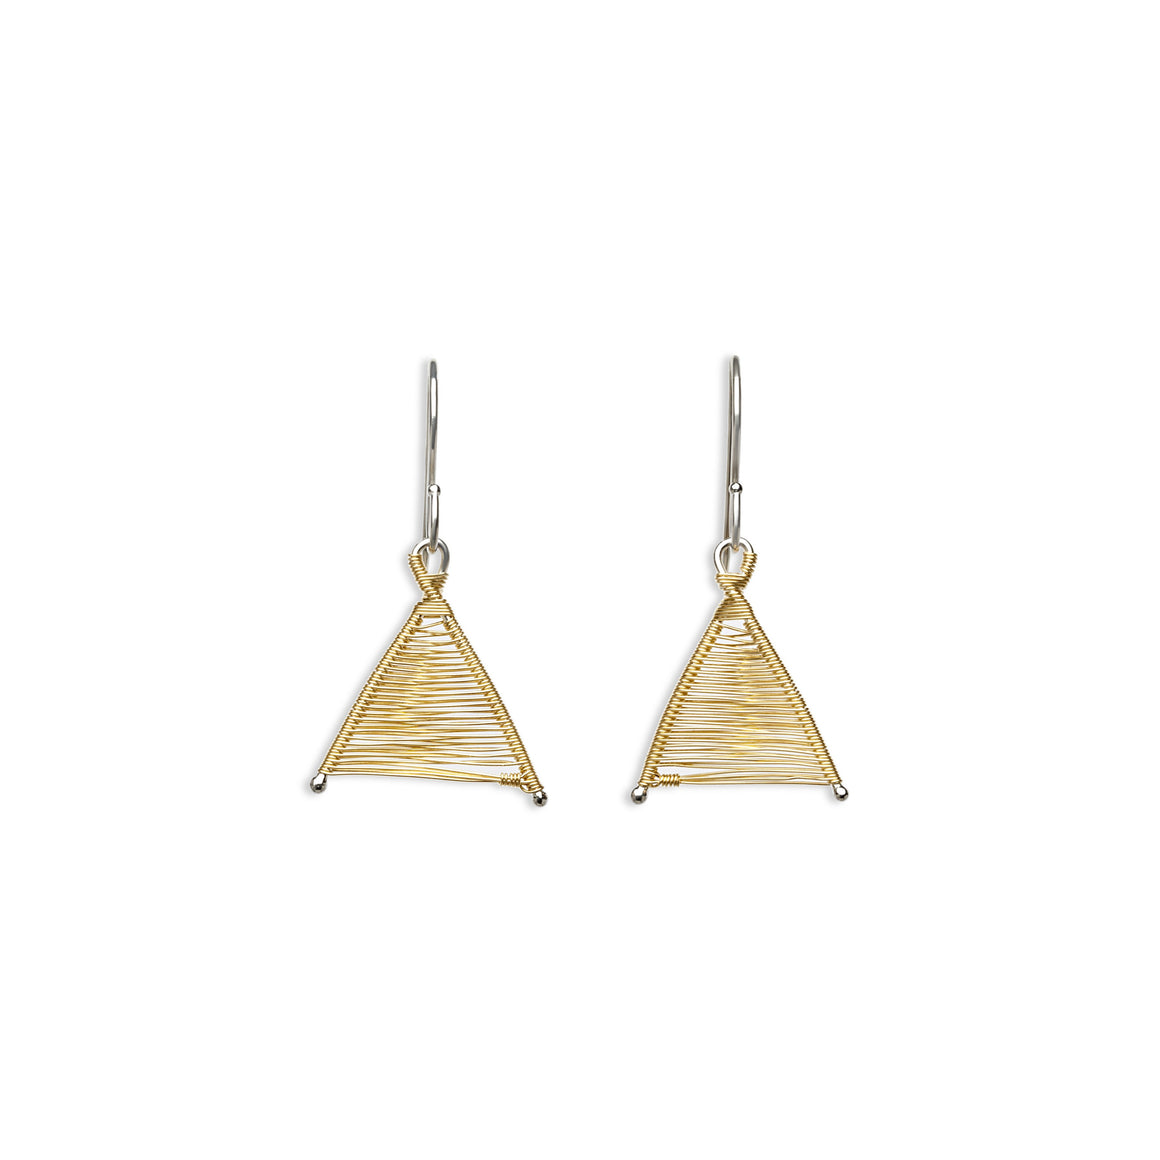 Tiny Woven Wishbone Silver & Gold Mixed Metal Earrings